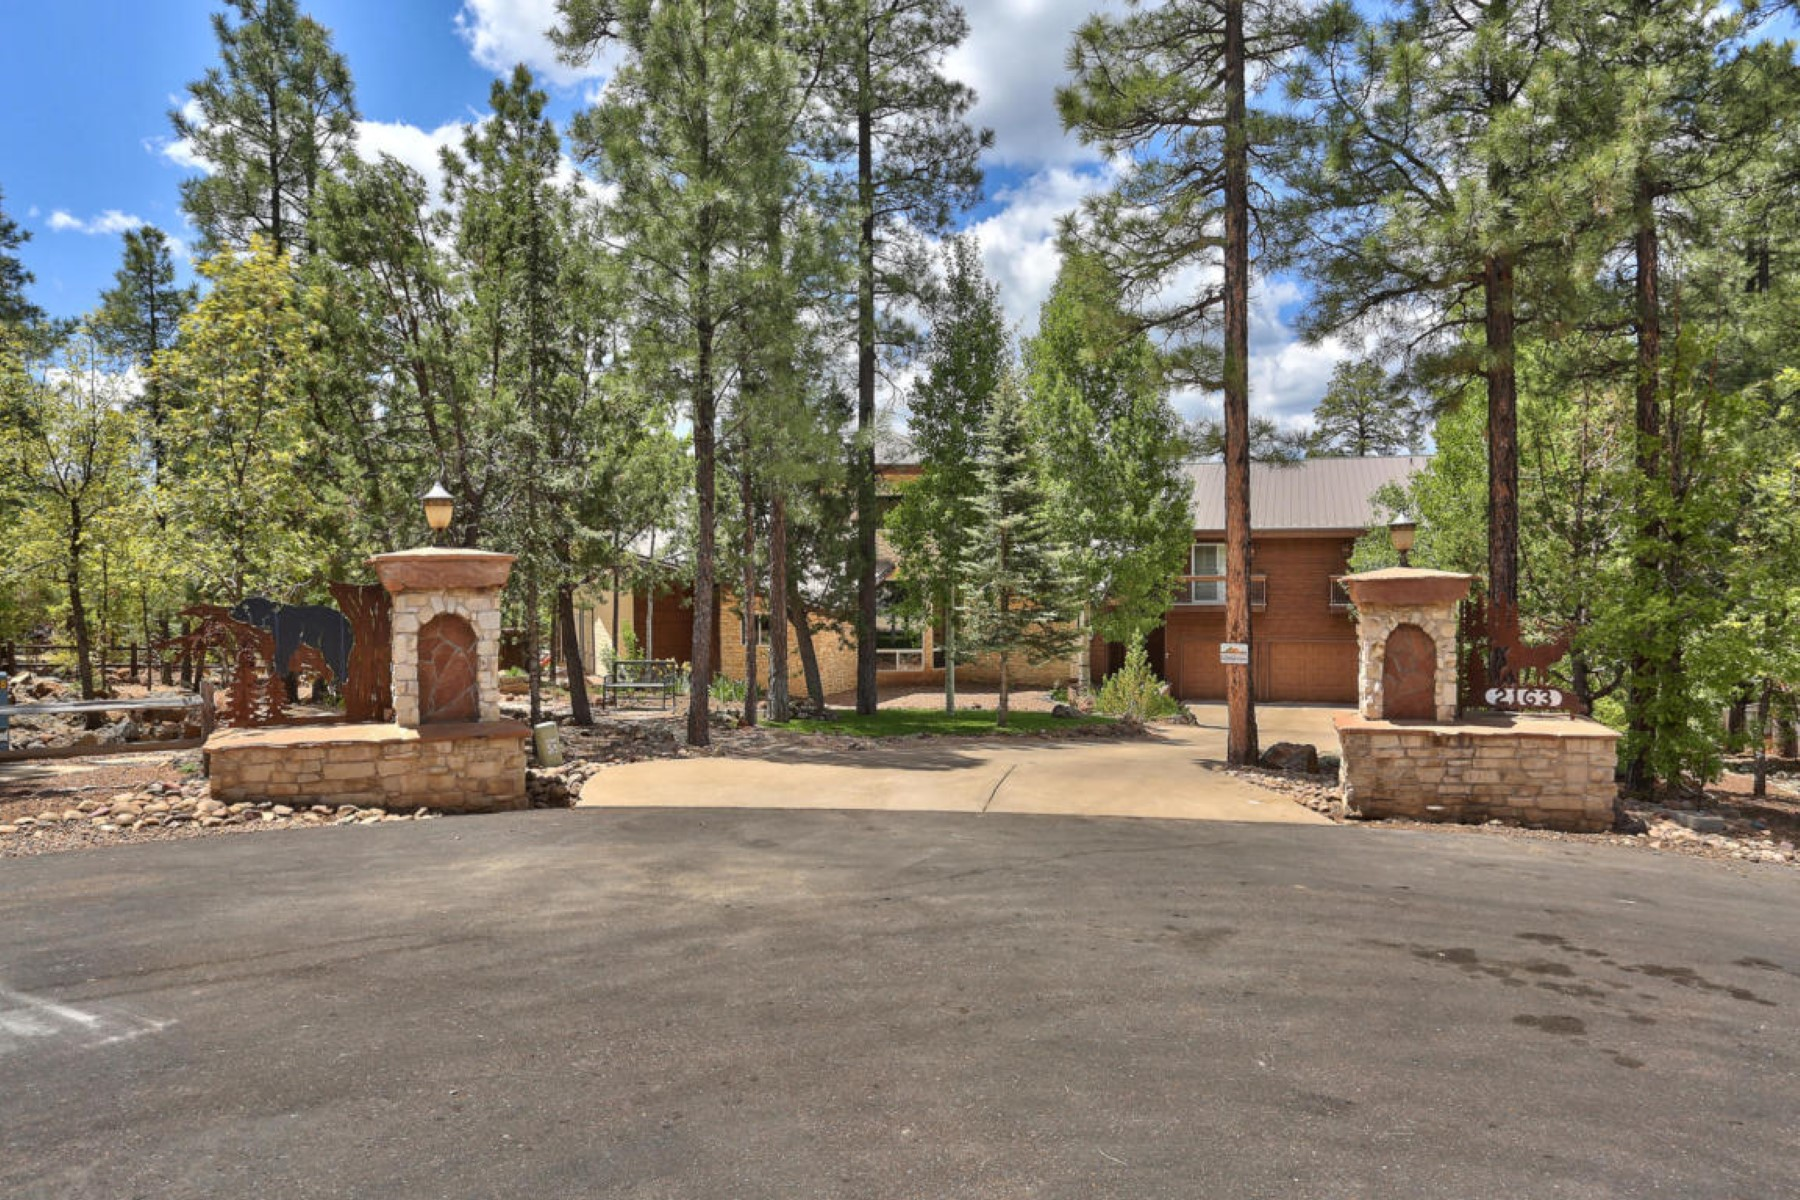 Maison unifamiliale pour l Vente à Spectacular estate conveniently located in gated community of Pineridge 2163 Creekside Court Pinetop, Arizona, 85935 États-Unis